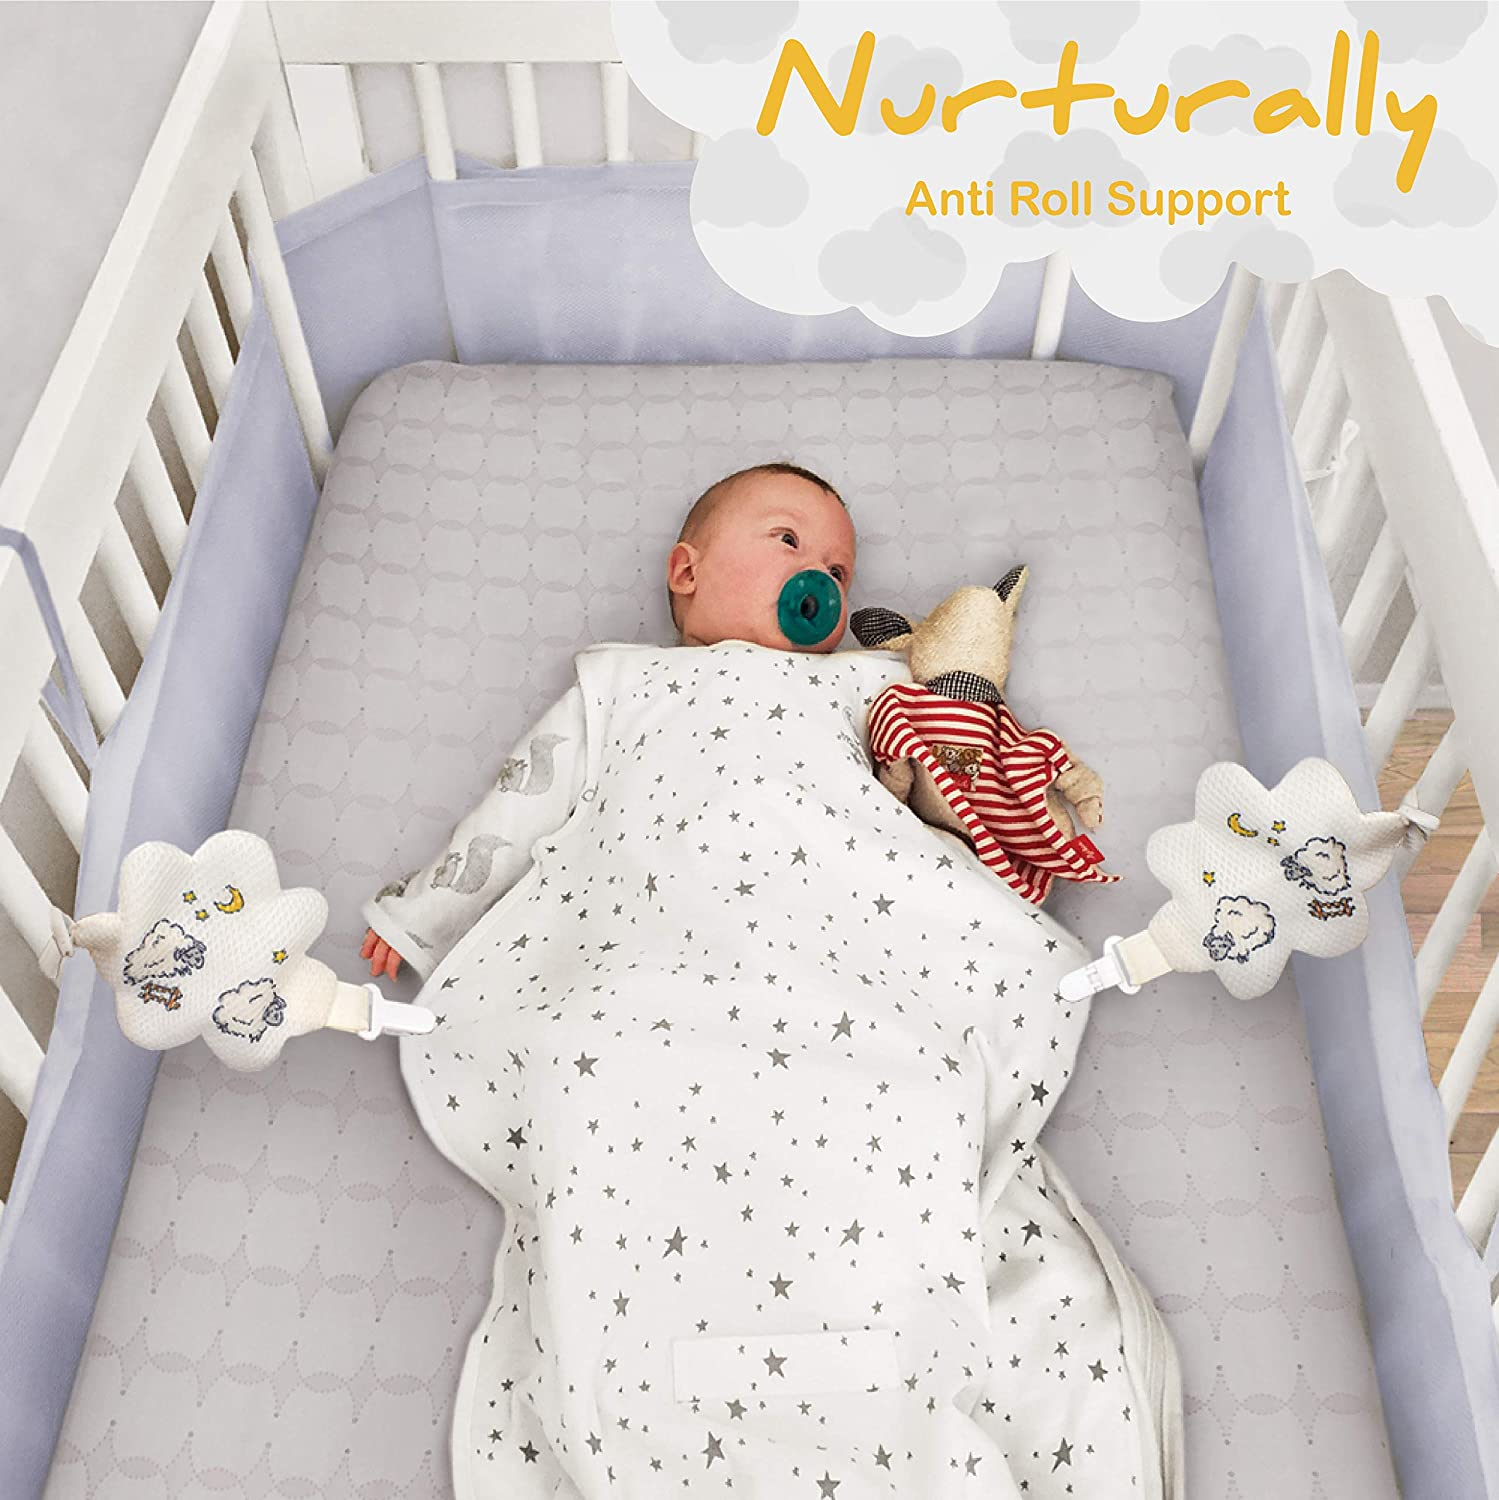 Nurturally Baby Anti Roll Support - Safe Breathable Fabric for Babies Age 3 to 6 Months Old, Designed in USA (Sleep Sack not Included)